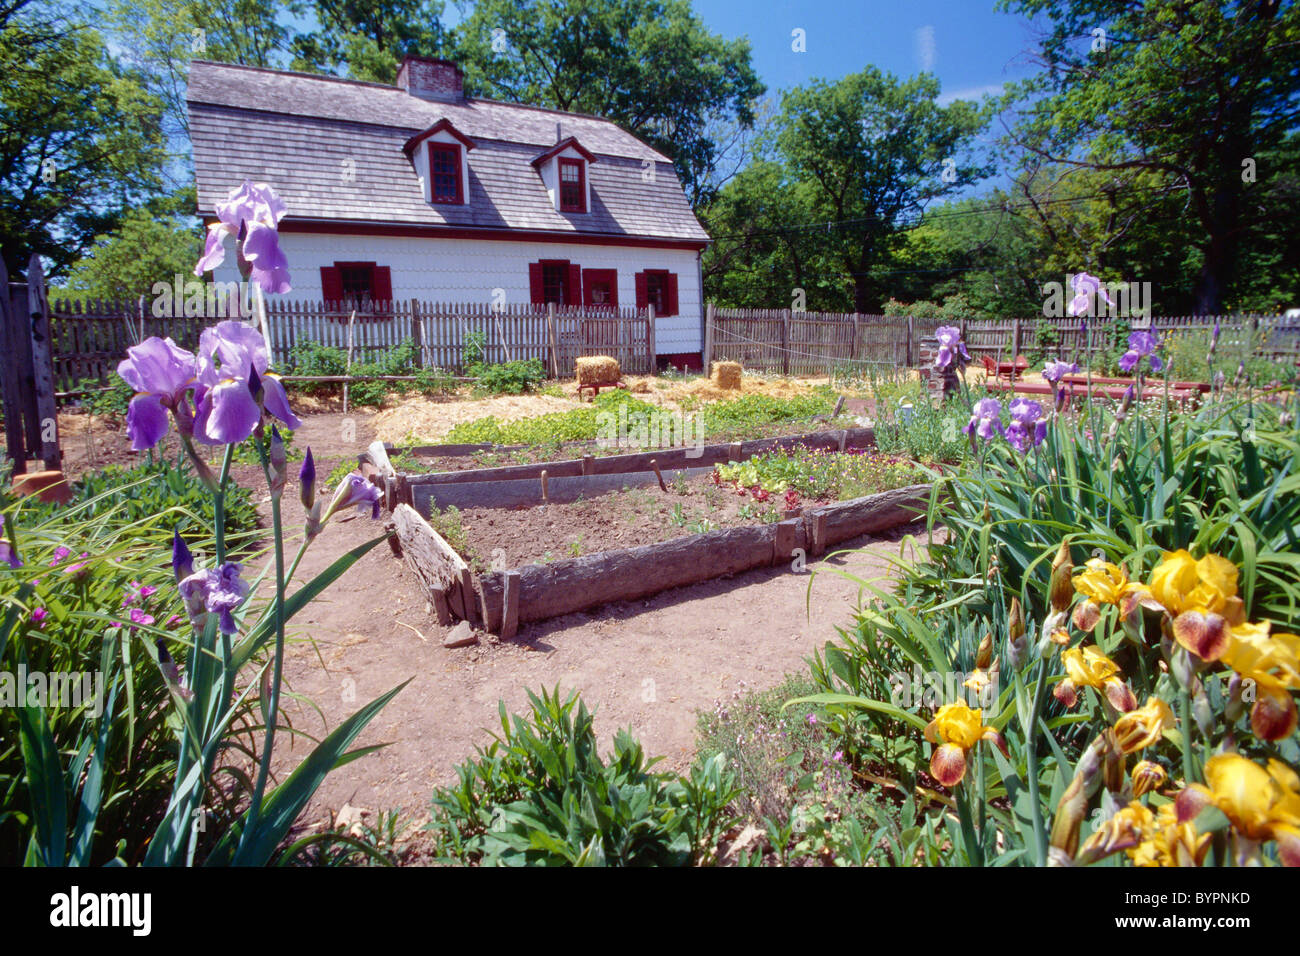 Colonial Garden Of The Johnson Ferry House, Washington Crossing State Park,  Titusville, New Jersey